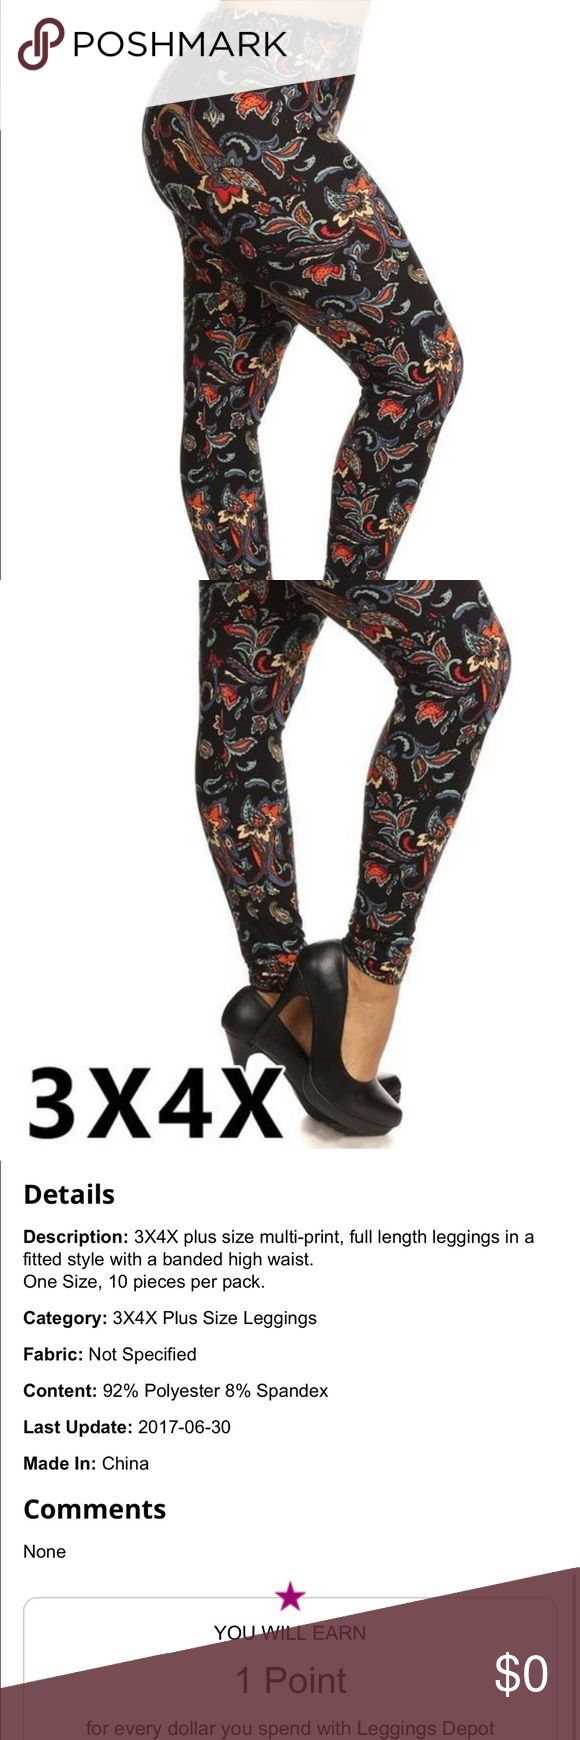 COMING SOON Plus Size Print Leggings Multi-Print Full Length Fitted High Waist Leggings.  92% Polyester and 8% Spandex. Smoke Free Home. Fast Shipping.  5⭐️ Rating !! Pants Leggings